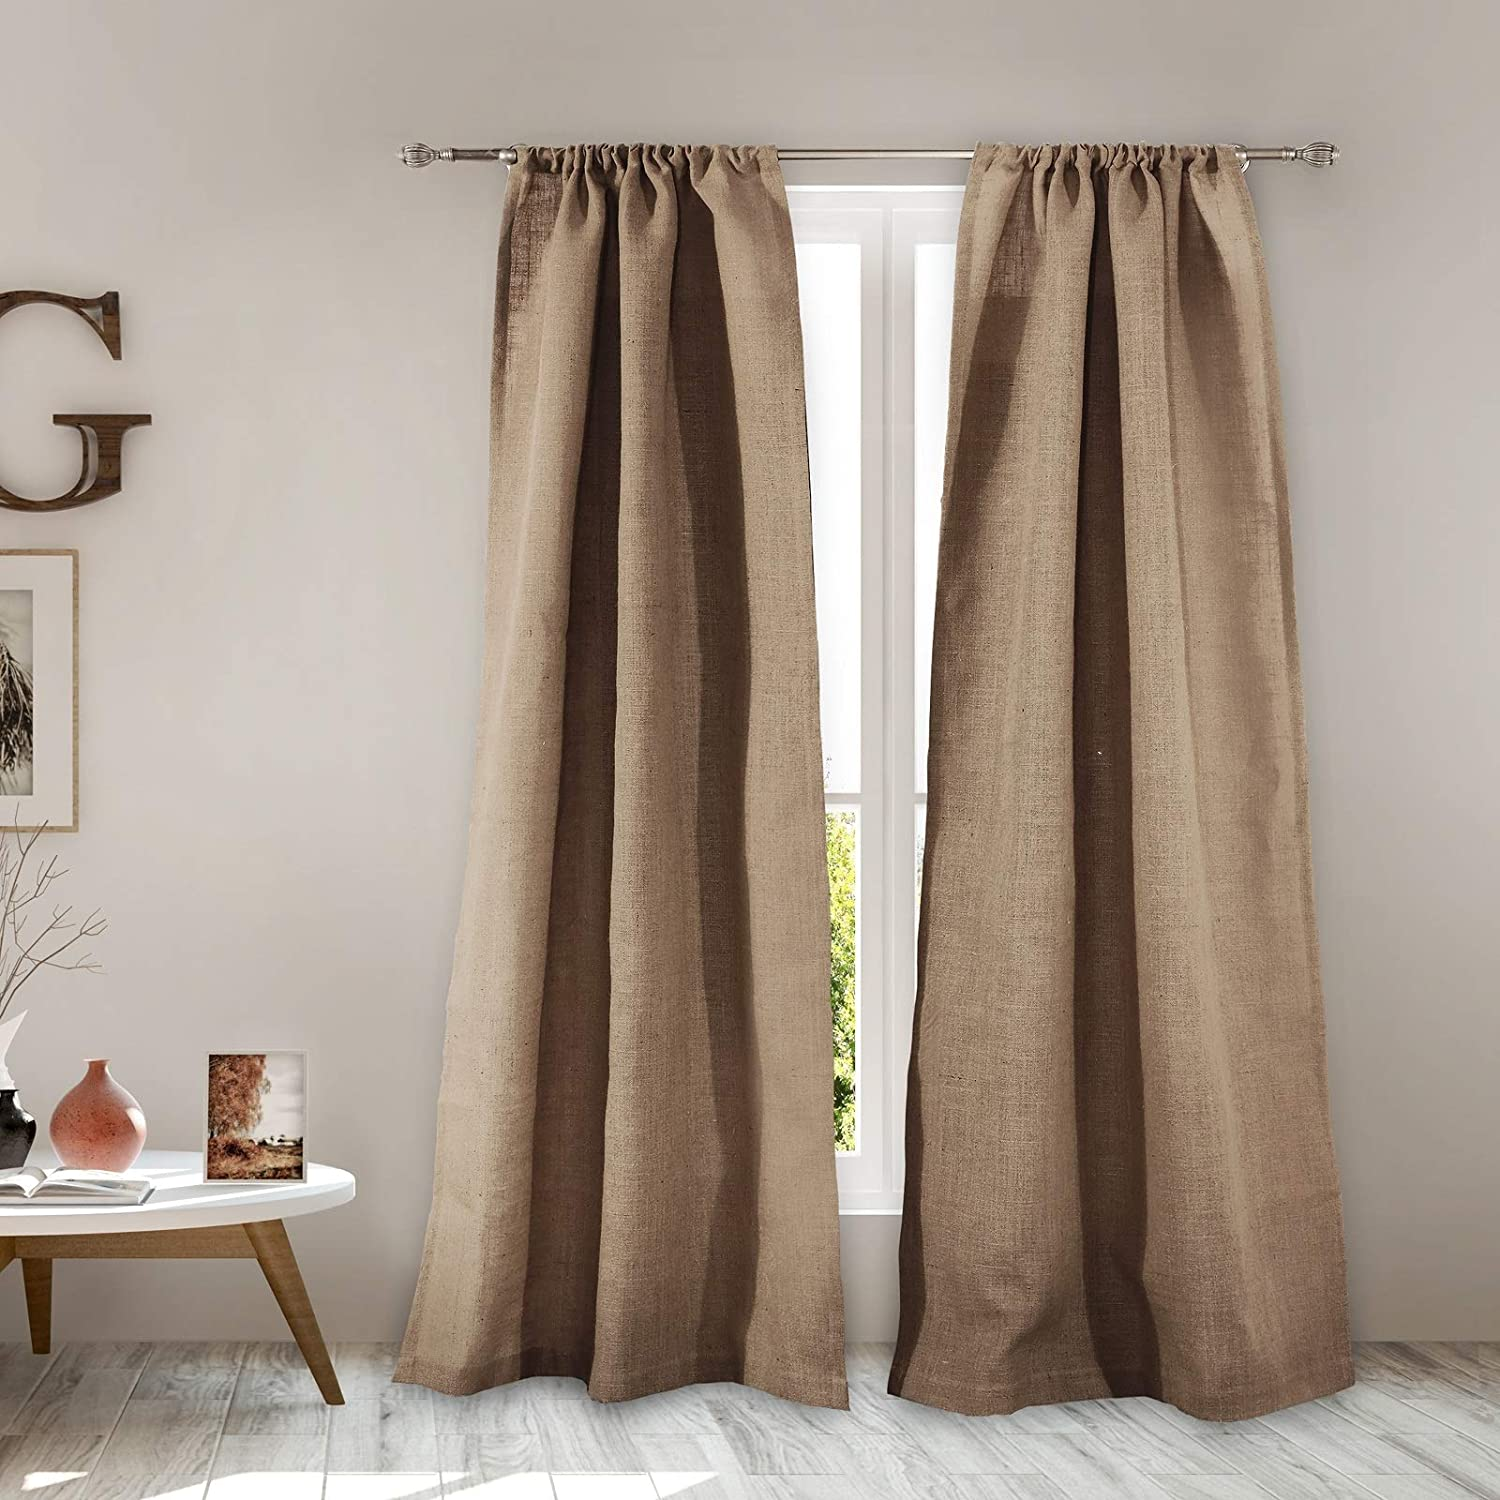 Greenland Home Burlap Window Curtain Panel Pair, Natural